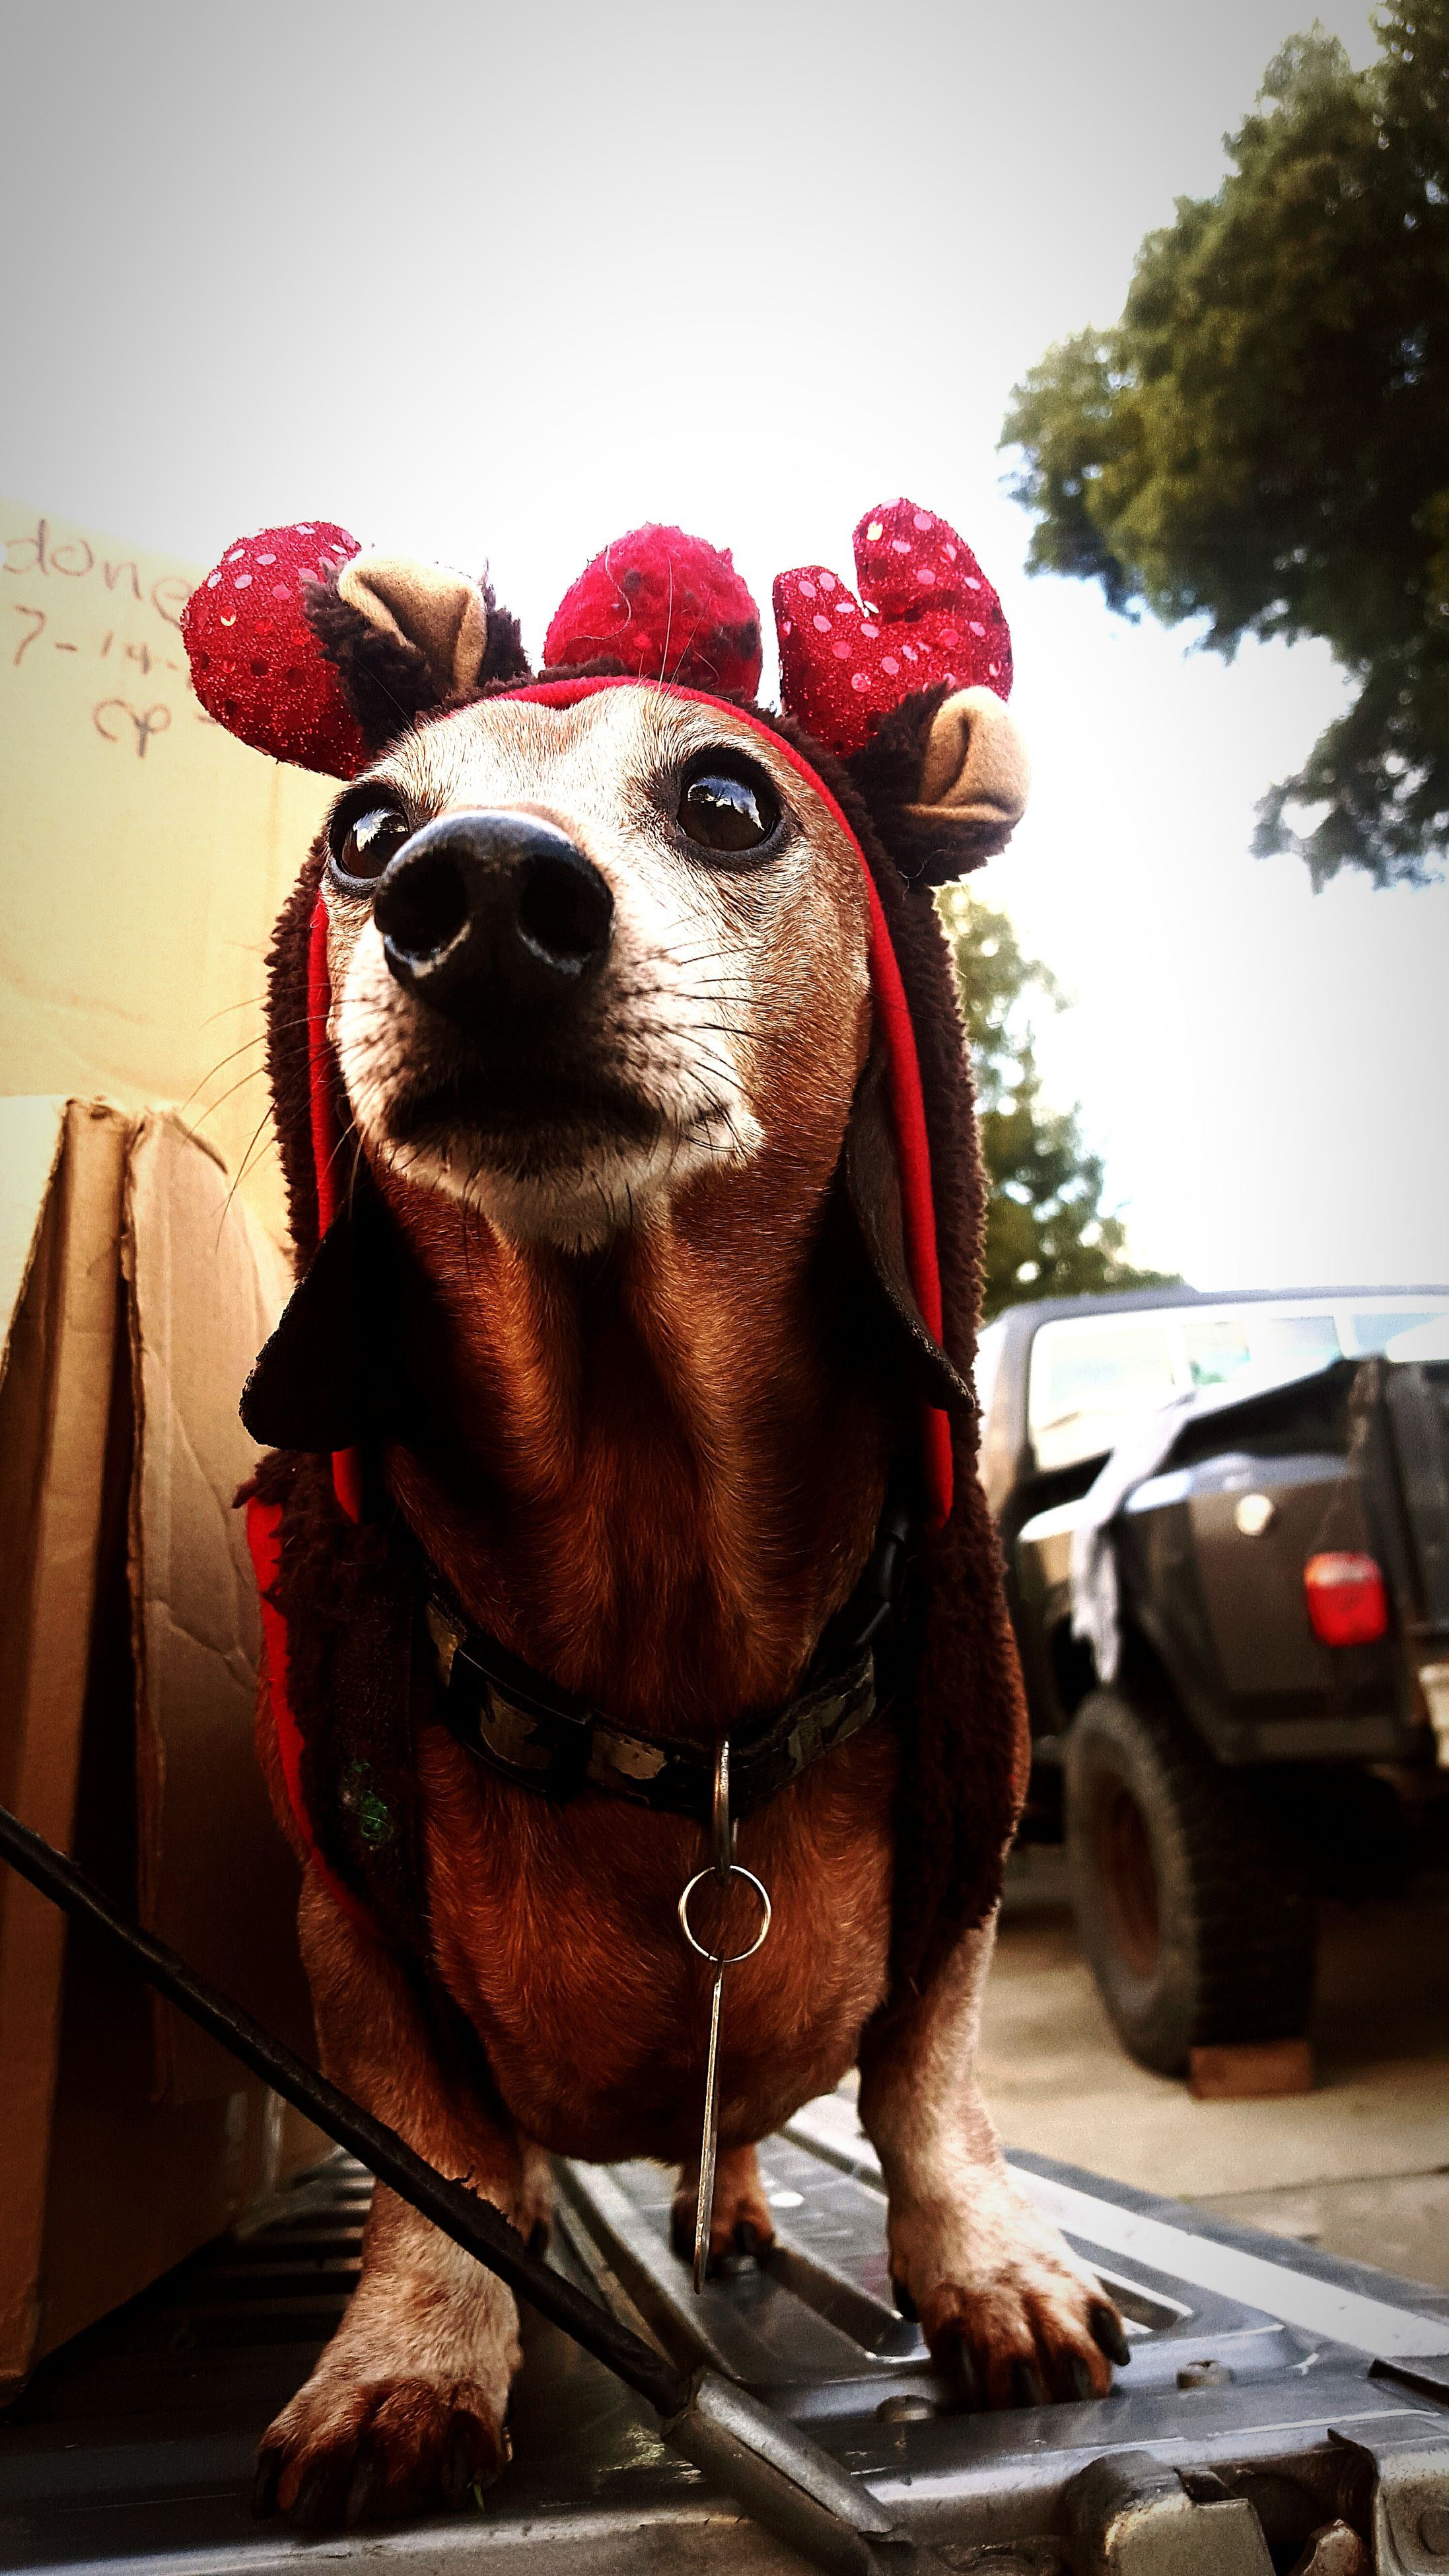 domestic animals, dog, animal themes, red, one animal, portrait, close-up, mammal, animal head, looking at camera, front view, pets, car, day, livestock, humor, no people, outdoors, transportation, animal representation